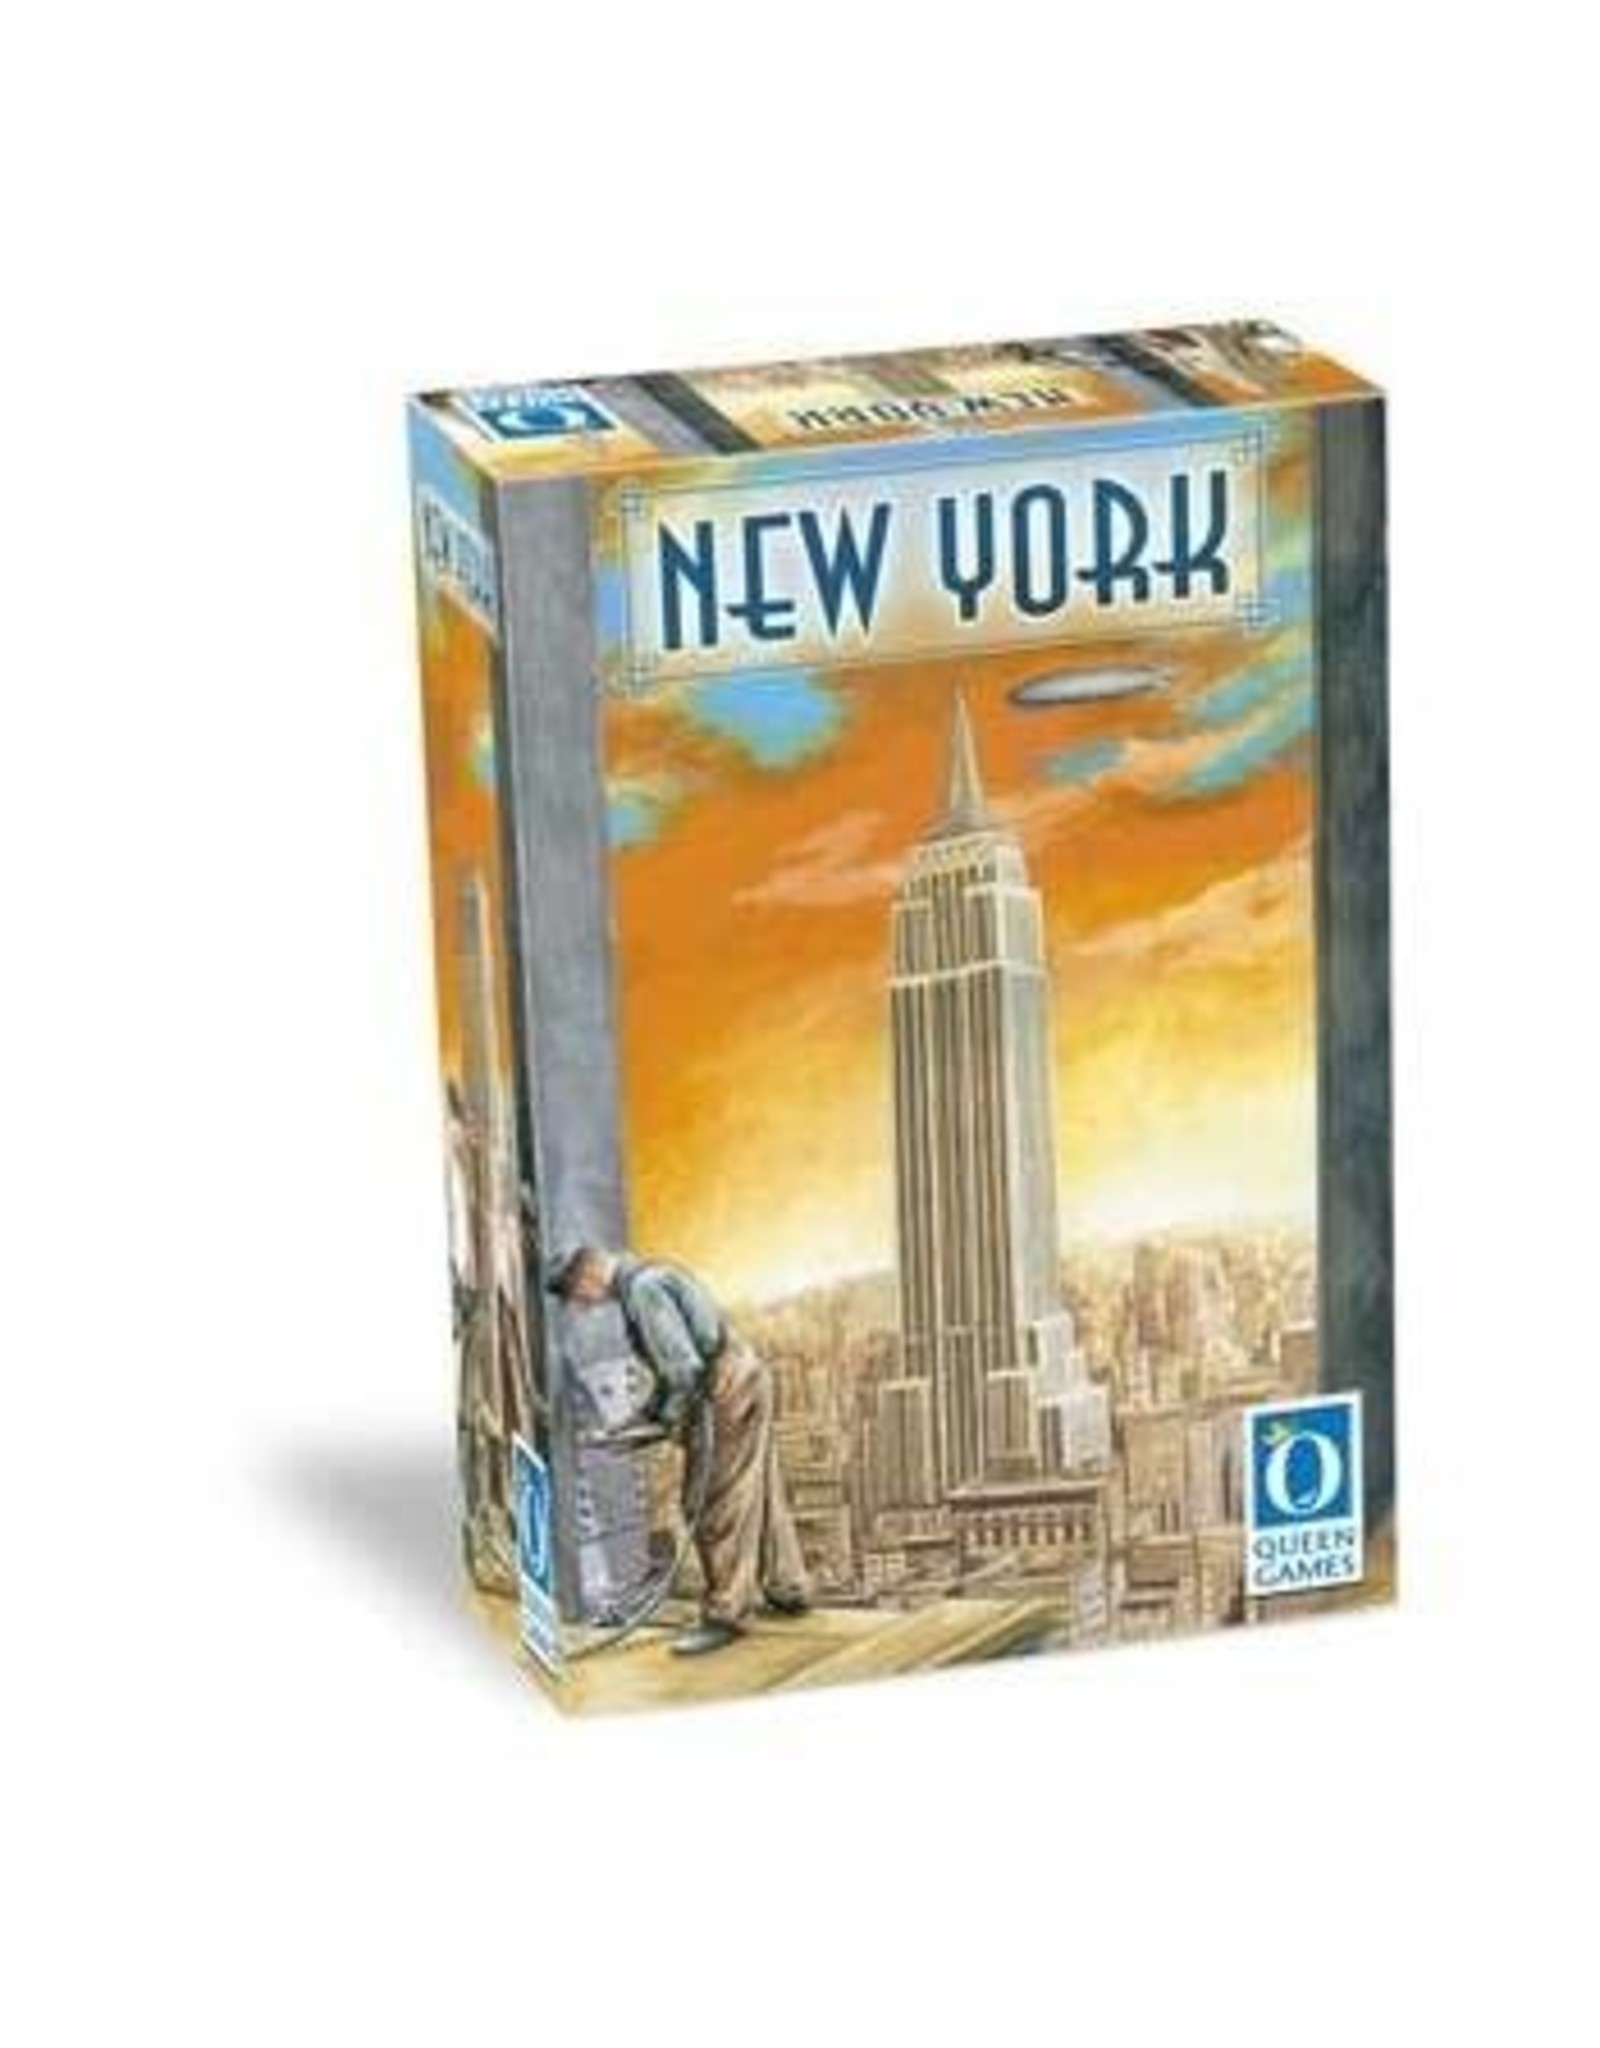 Queen Games ALHAMBRA: NEW YORK EDITION (WEBX)